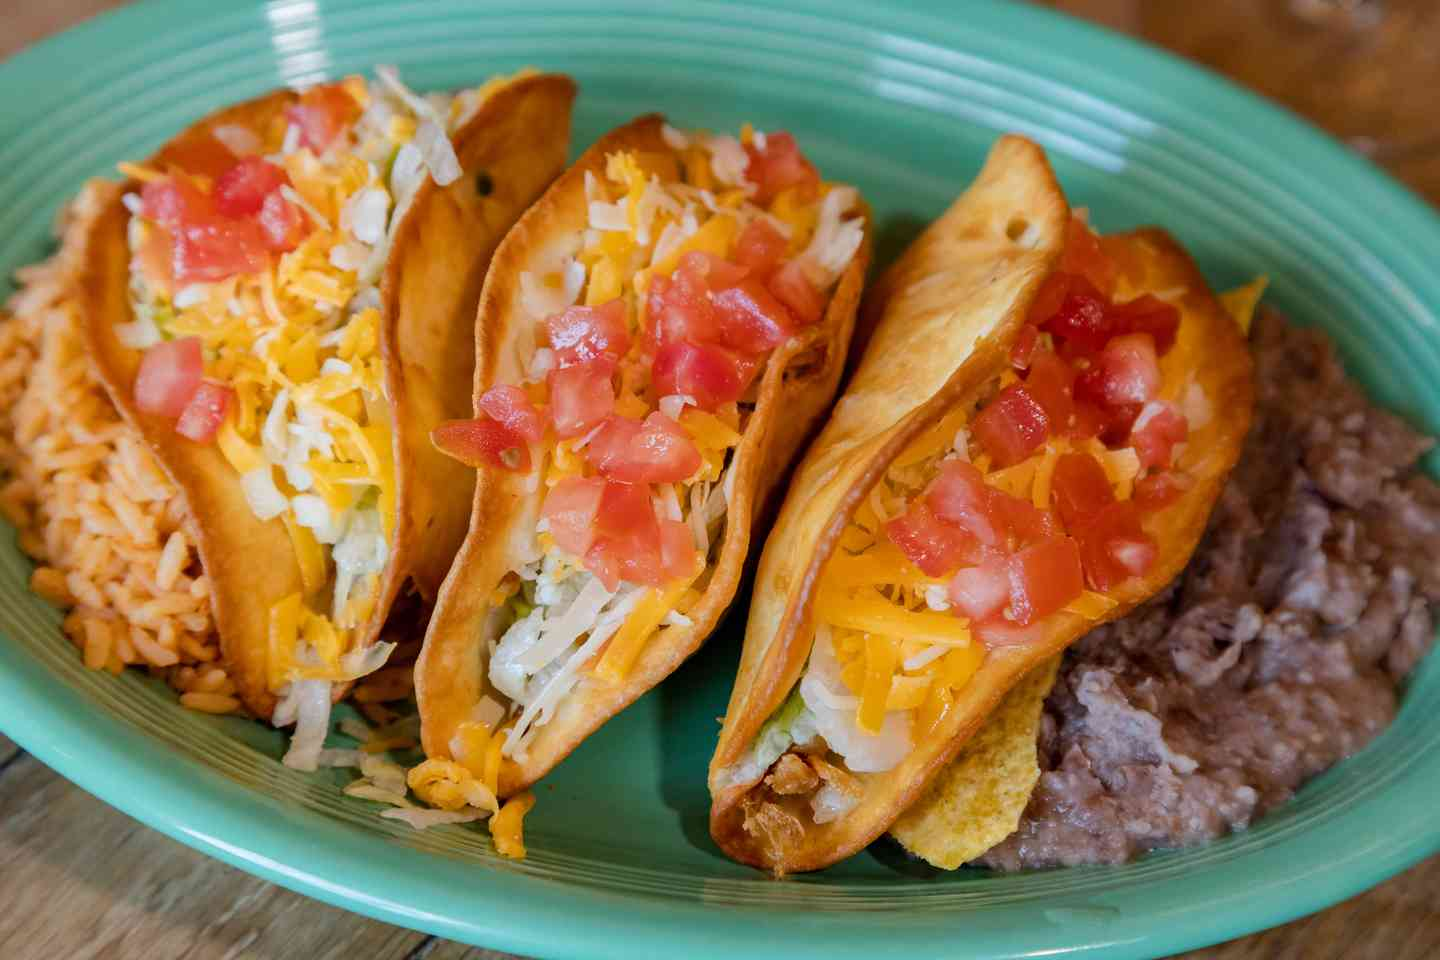 Fried Flour Or Soft Flour Tacos